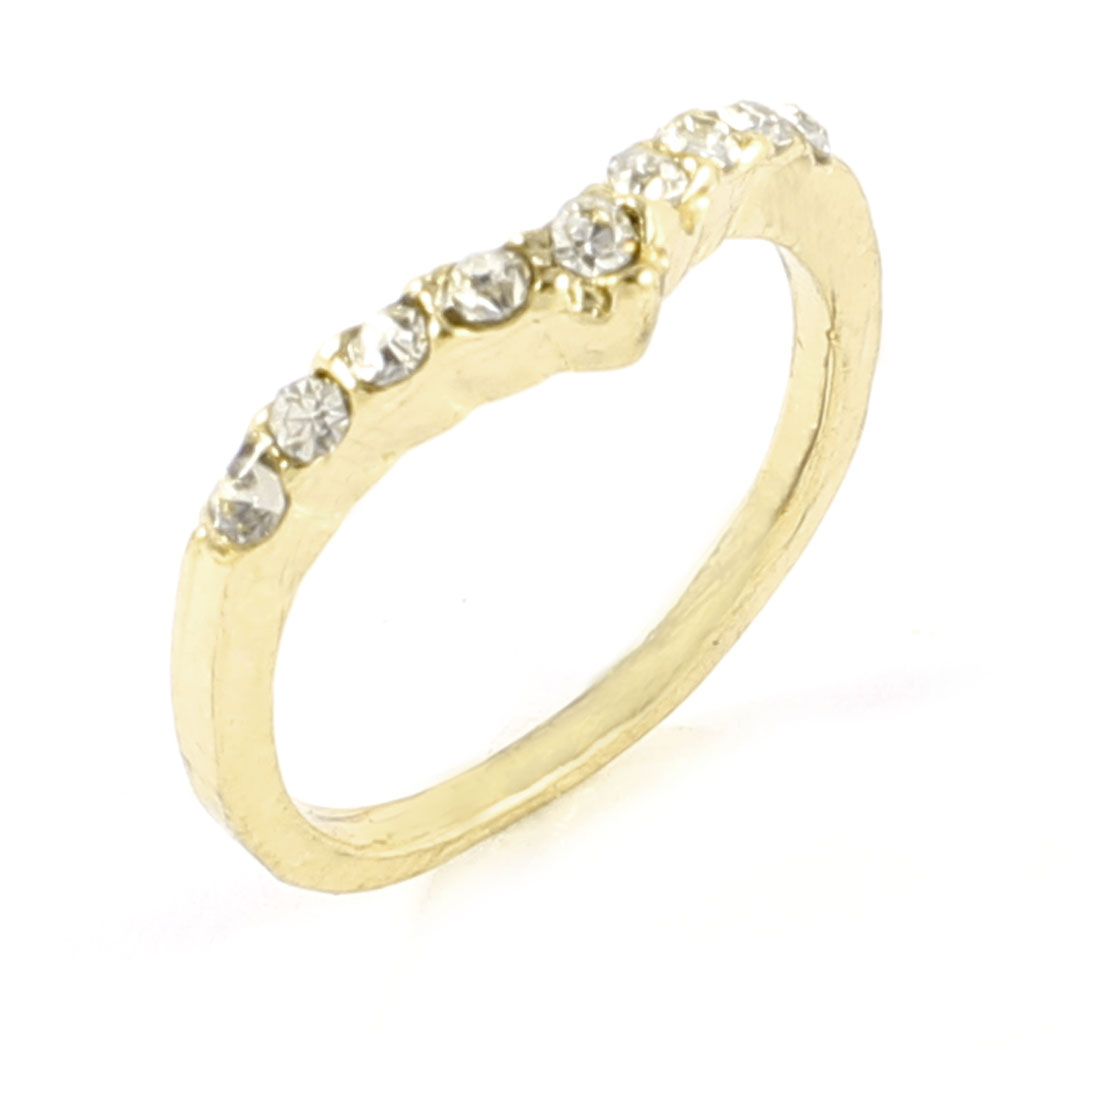 Gold Tone Metal Glitter Rhinestone Detailed Finger Ring Gift for Ladies